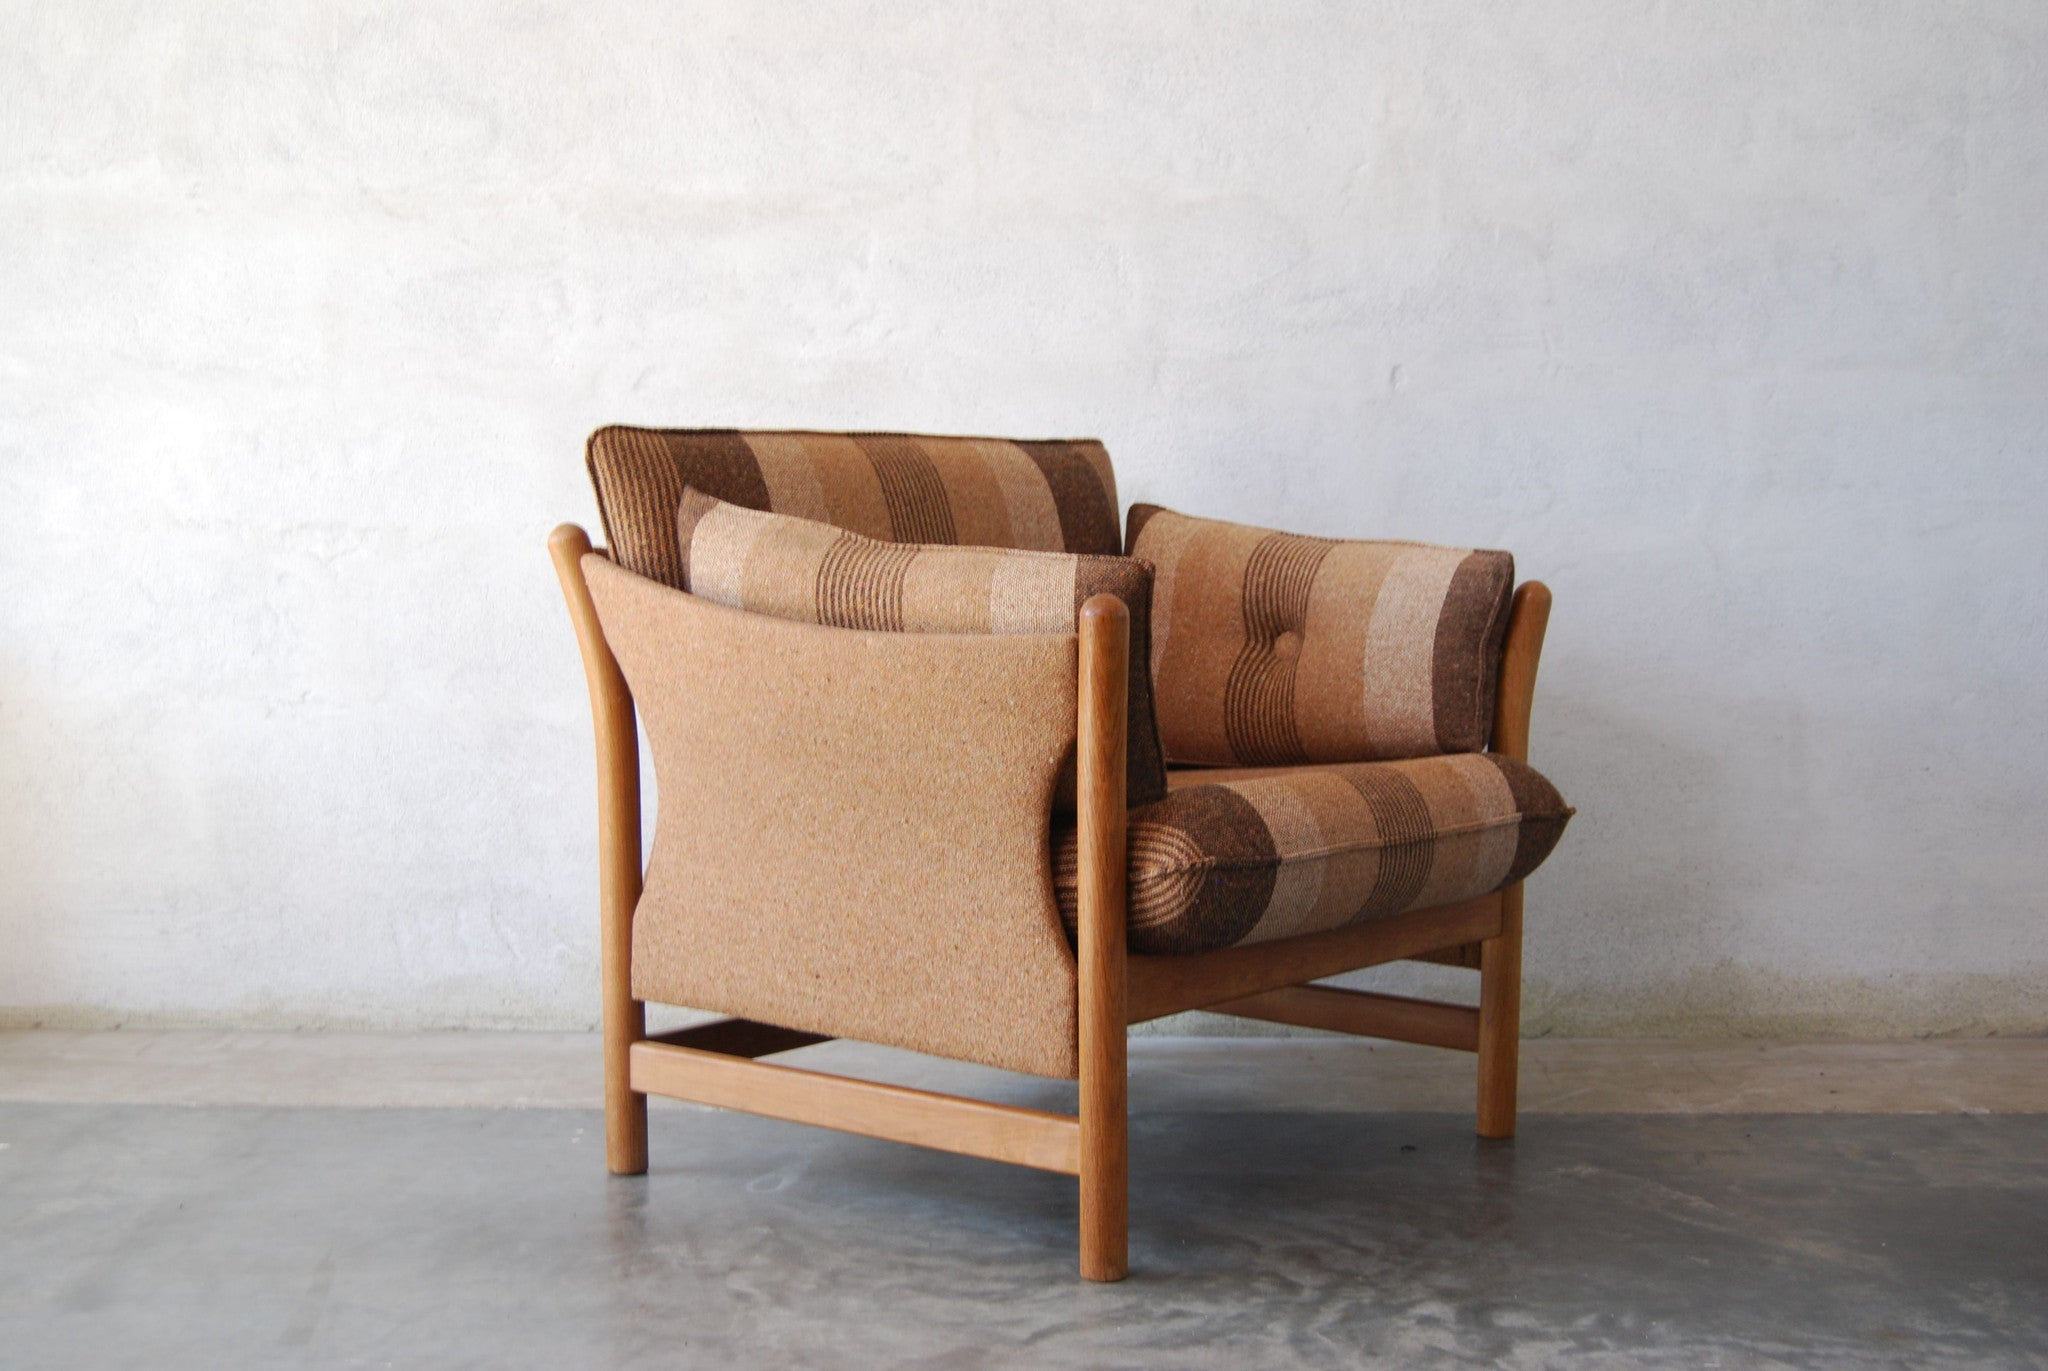 New price: Oak-framed lounge chair